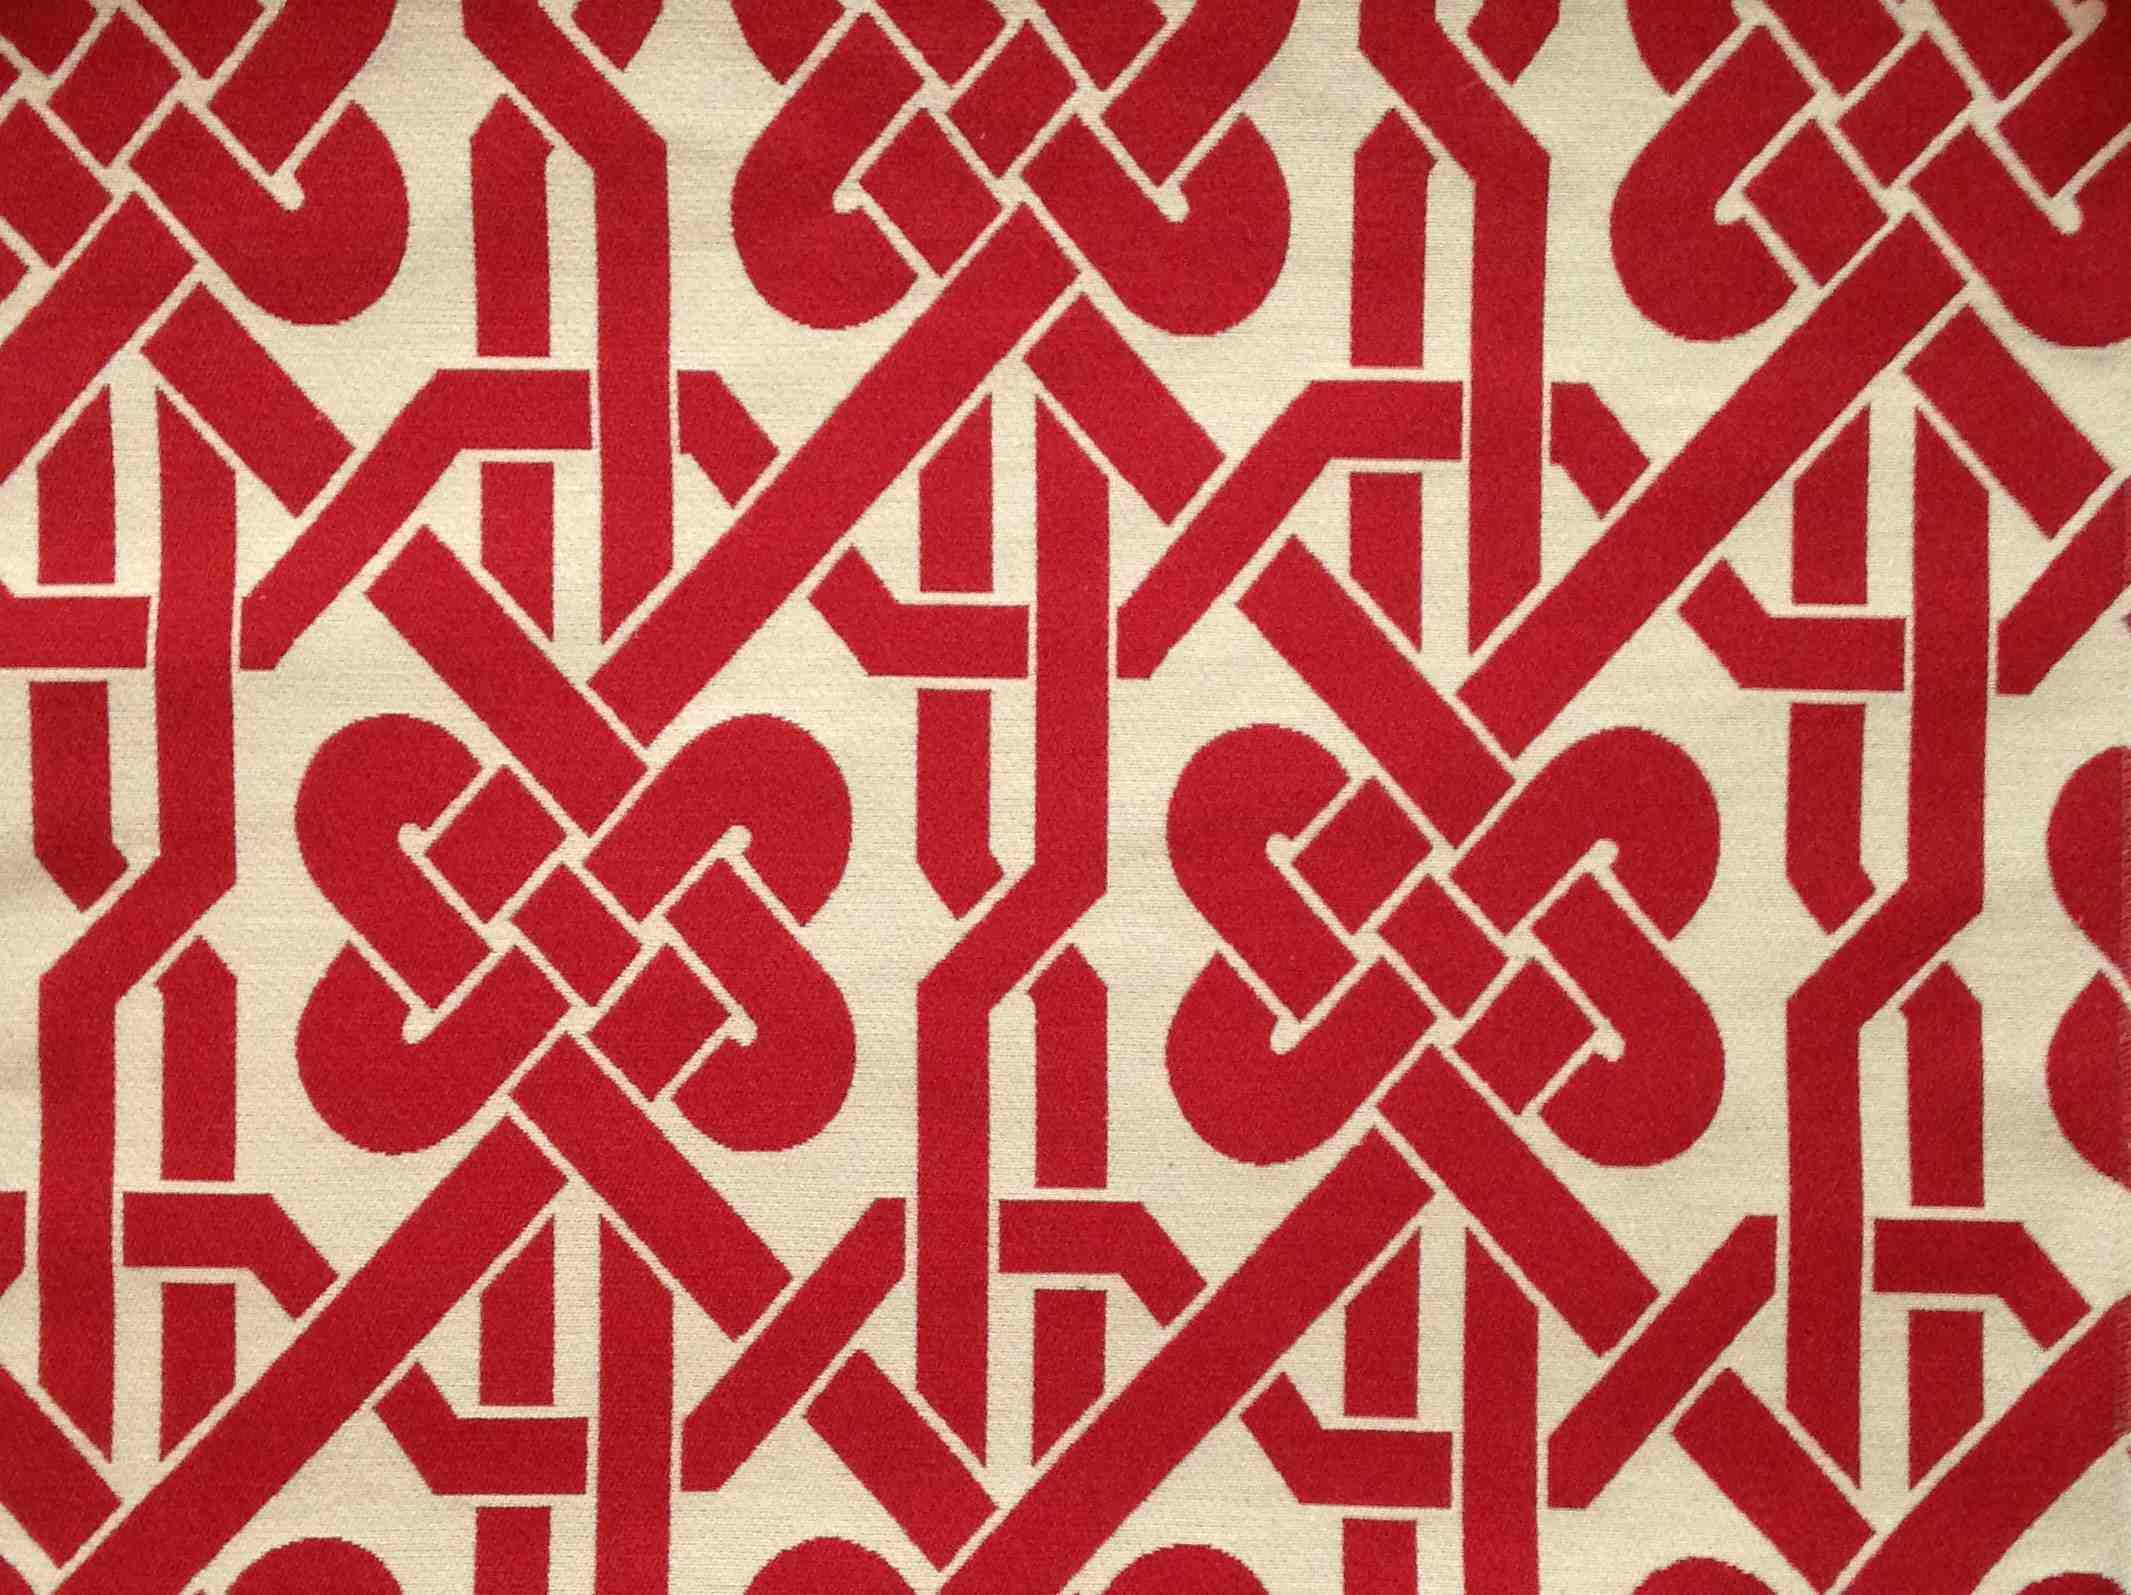 Feng Shui Chinese New Year Red Geometric Knot Chinoiserie Upholstery Fabric